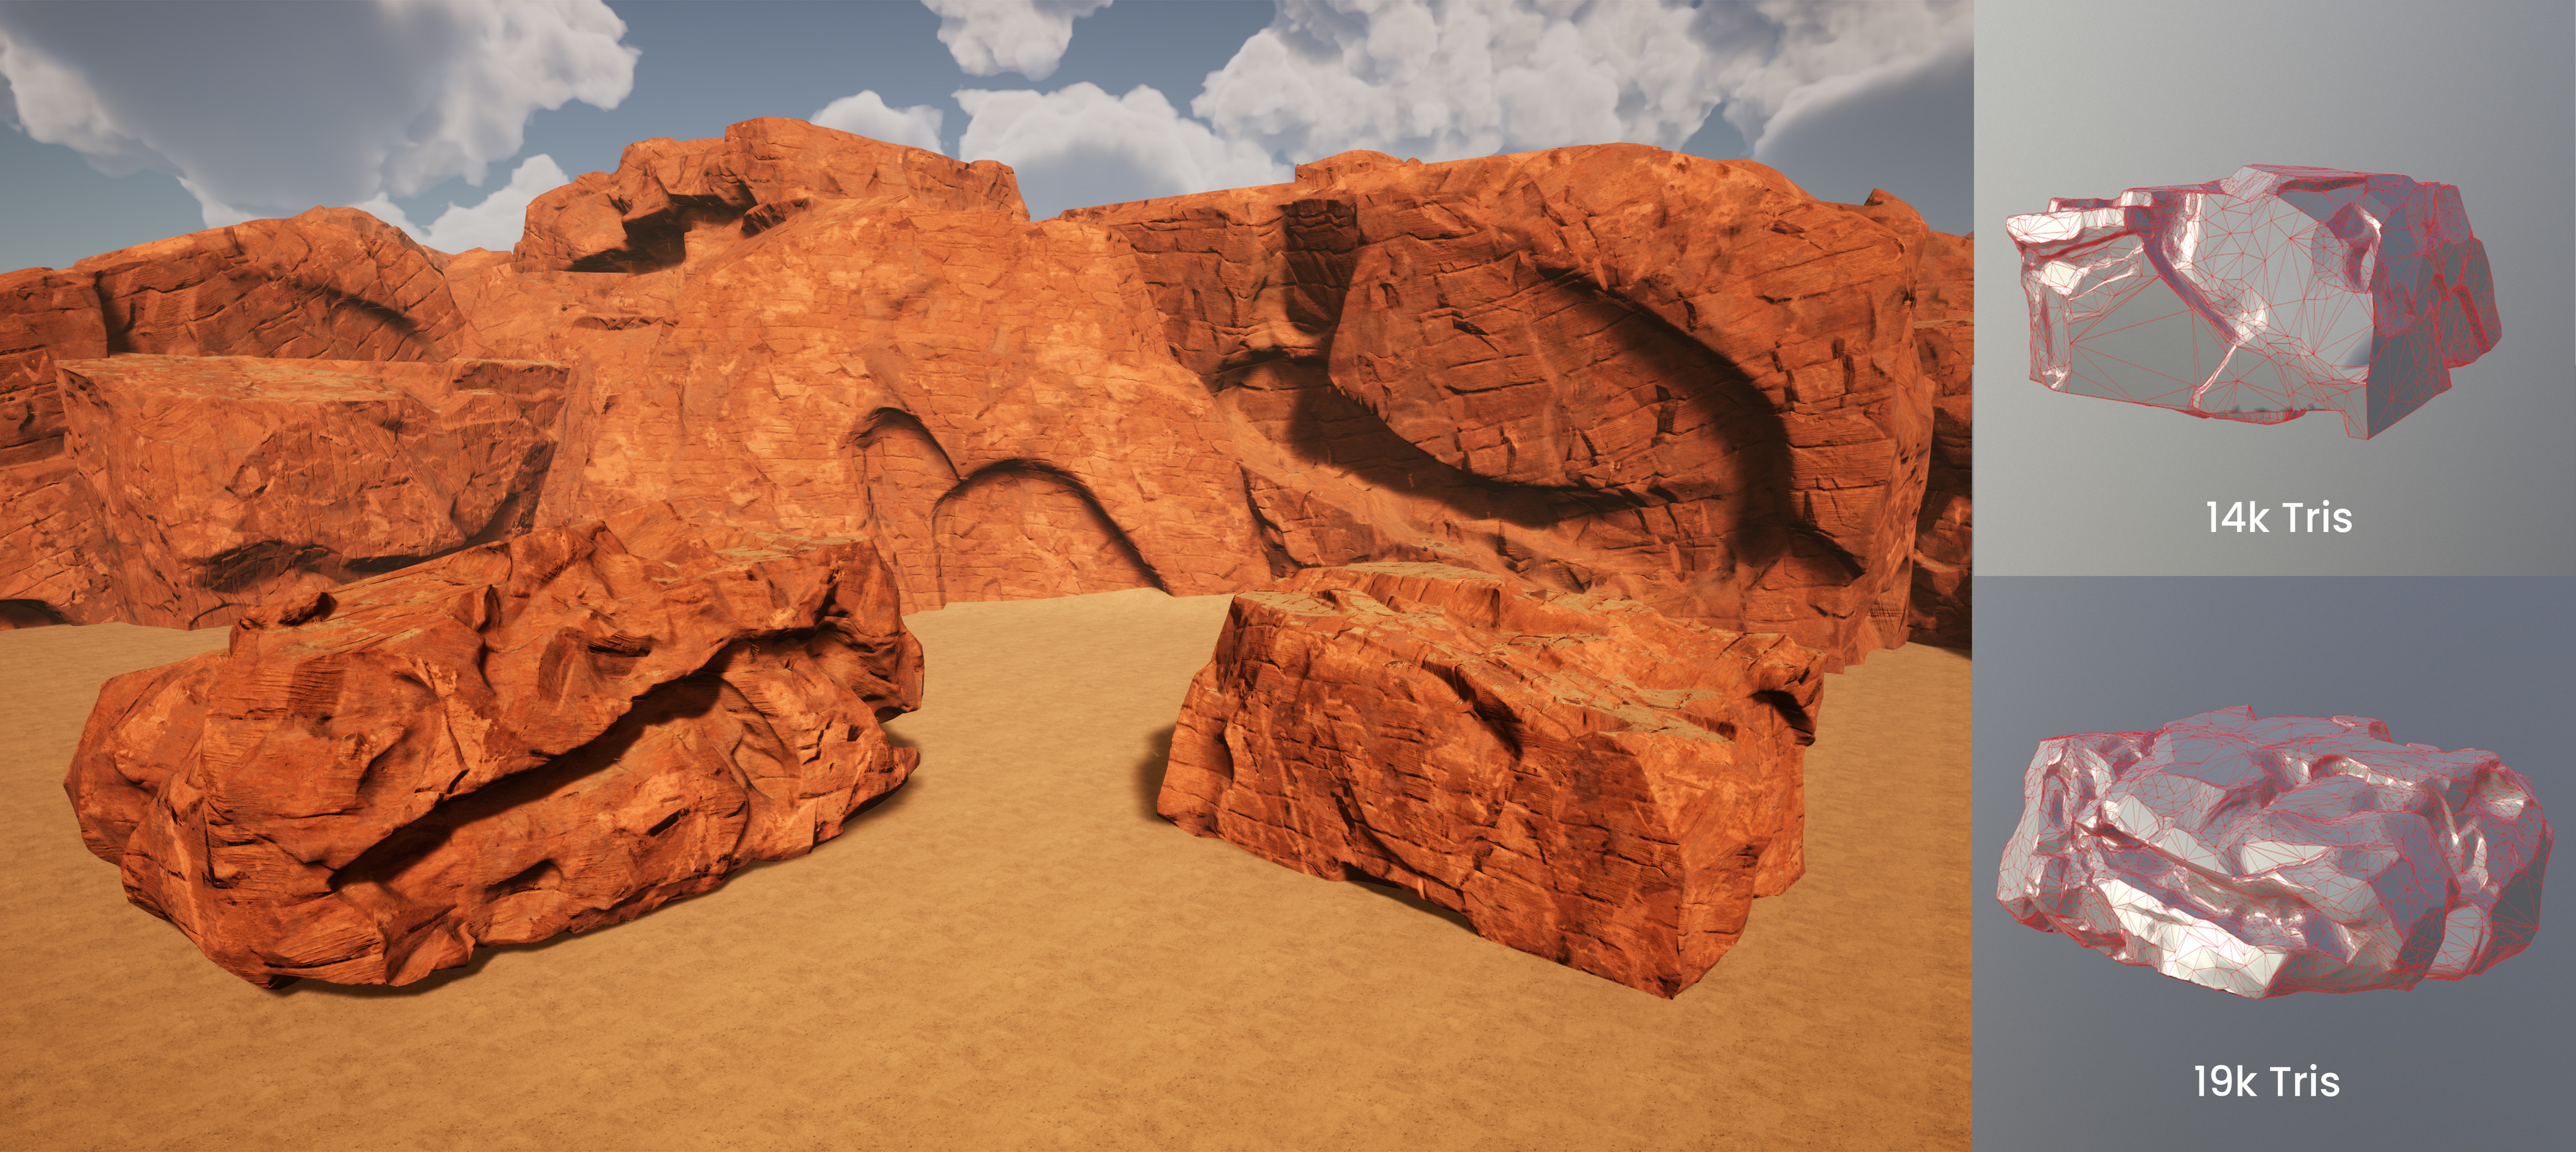 Pair of Cliff rocks sculpted in Zbrush using a different RGB mask material than that used on the other assets. Thanks to https://www.artstation.com/wermuth for his AAA rock tutorial that is the basis for these rocks